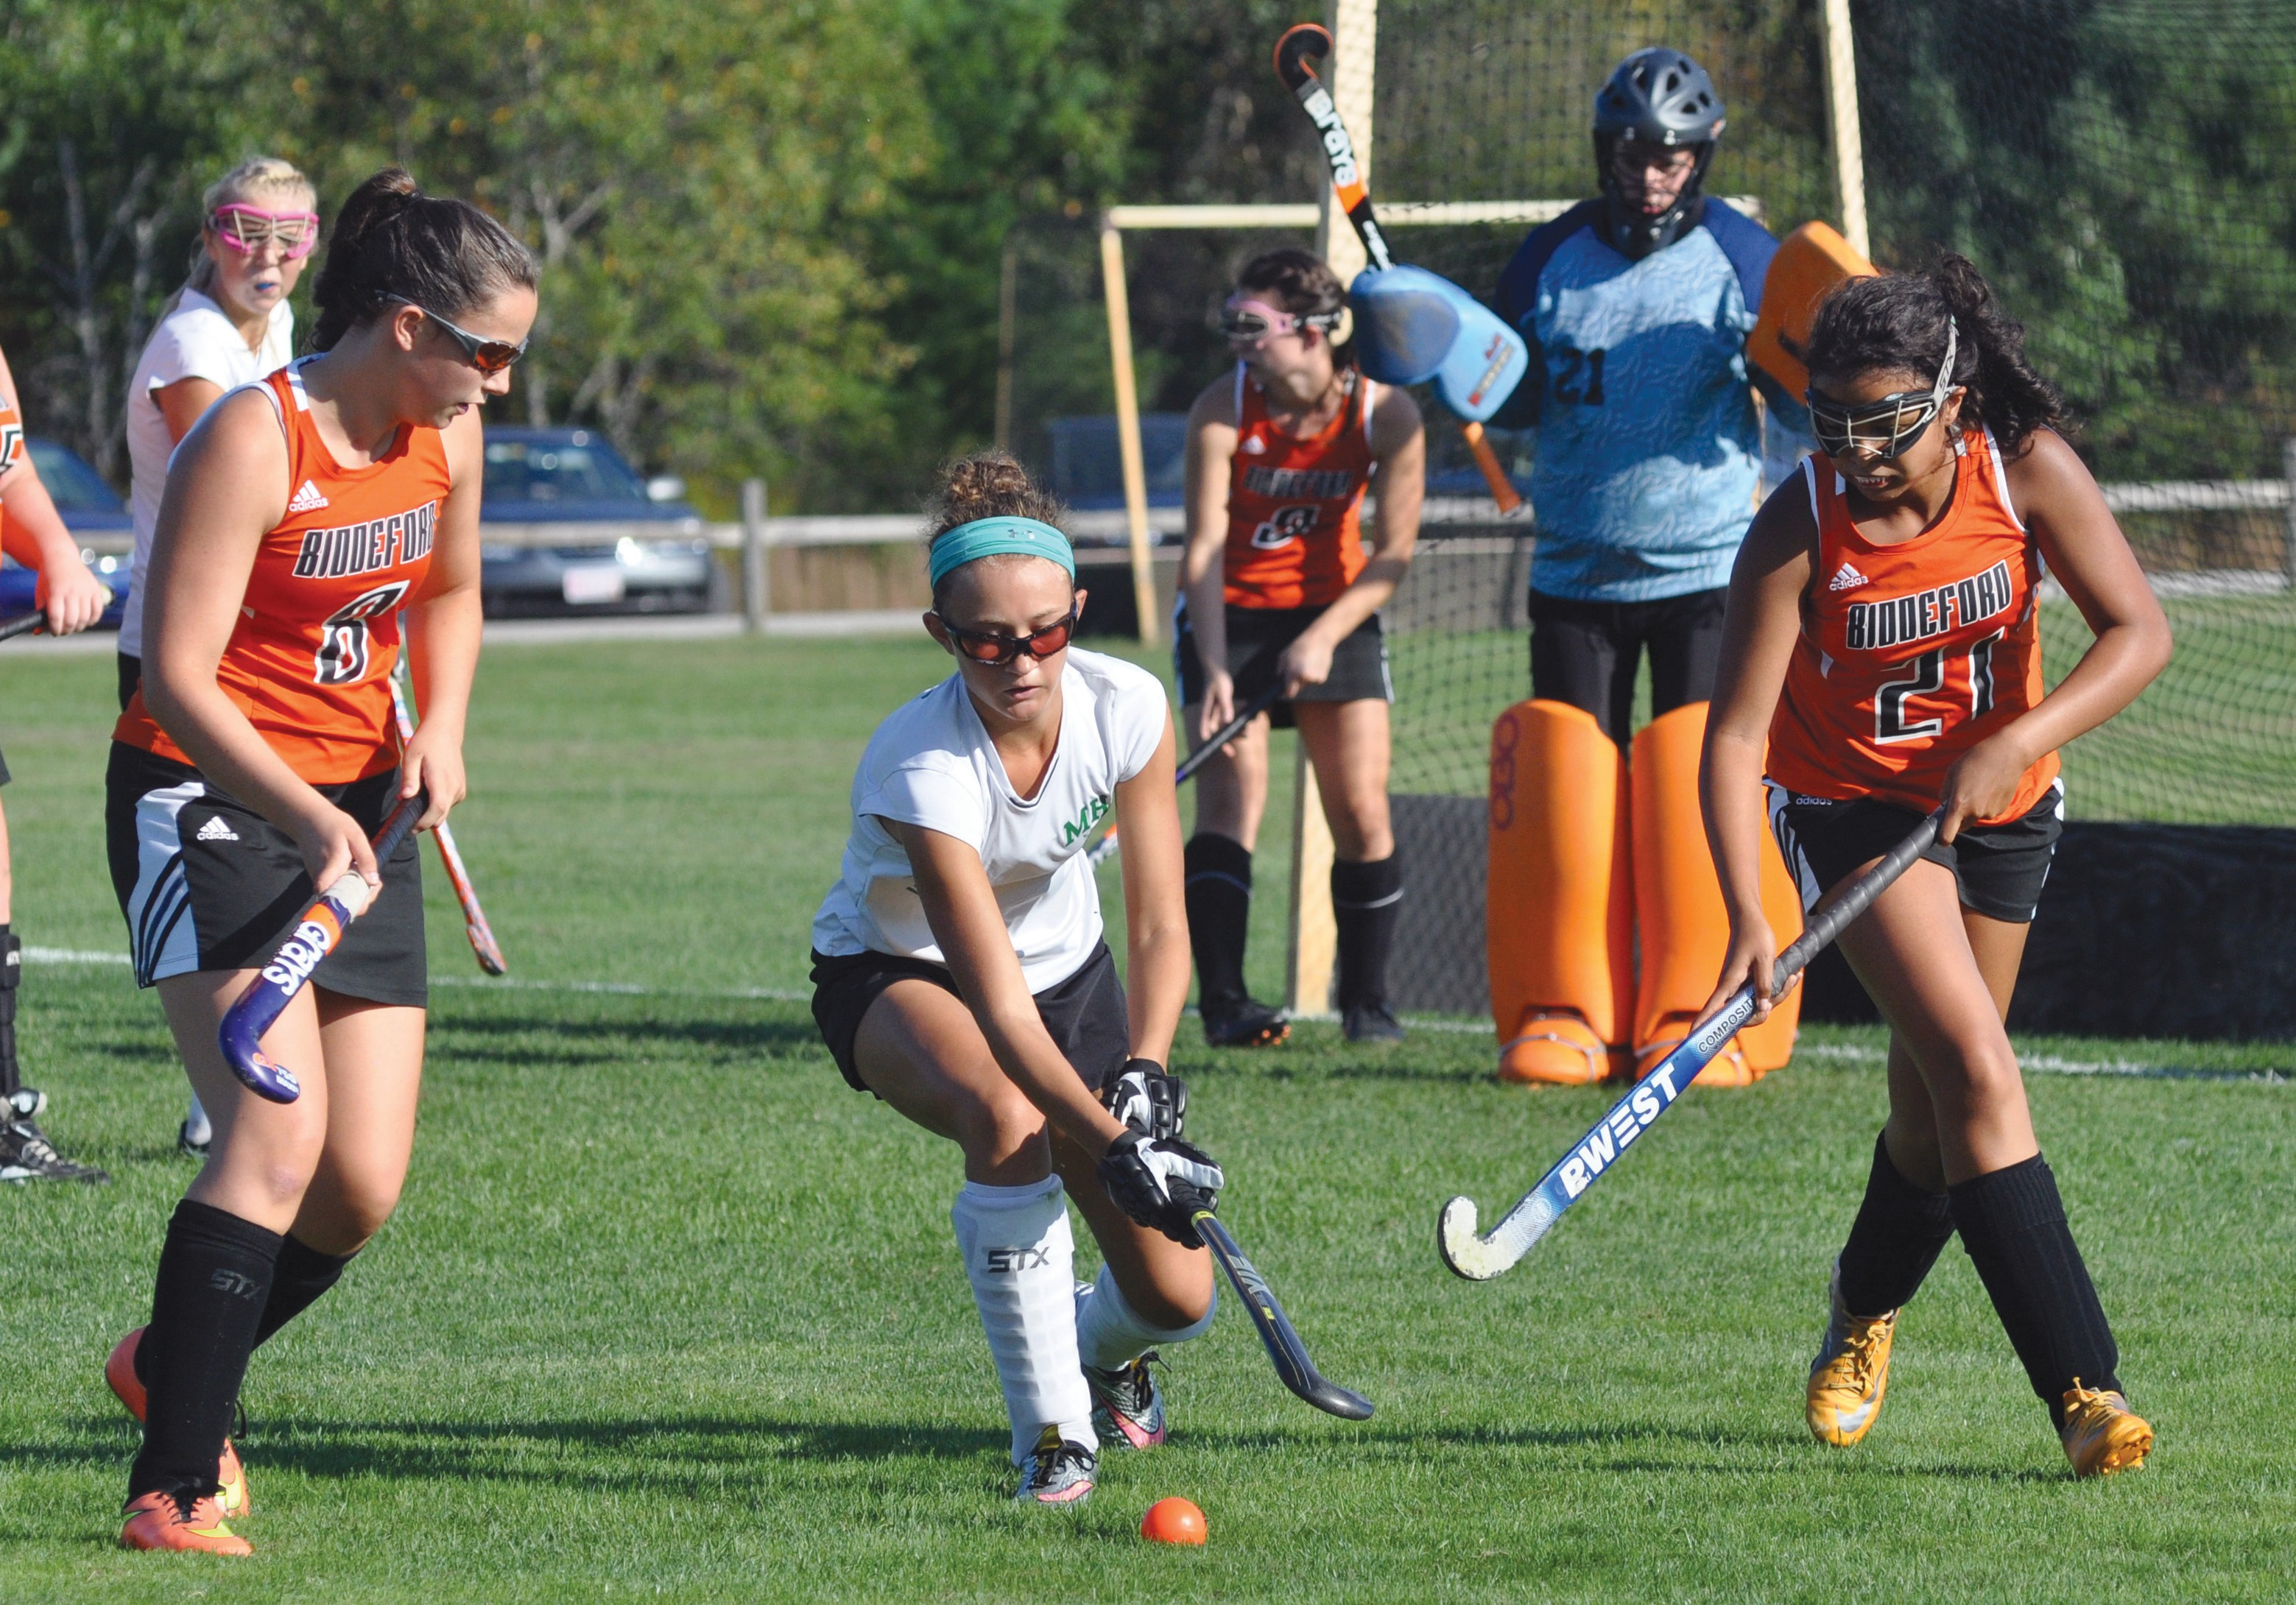 Massabesic's Logan Champlin, center, controls the ball between Biddeford's Peyton McKeown, left, and Jada Kimball during the Mustangs' 7-0 victory in Waterboro Wednesday. Champlin scored a pair of goals in the win.